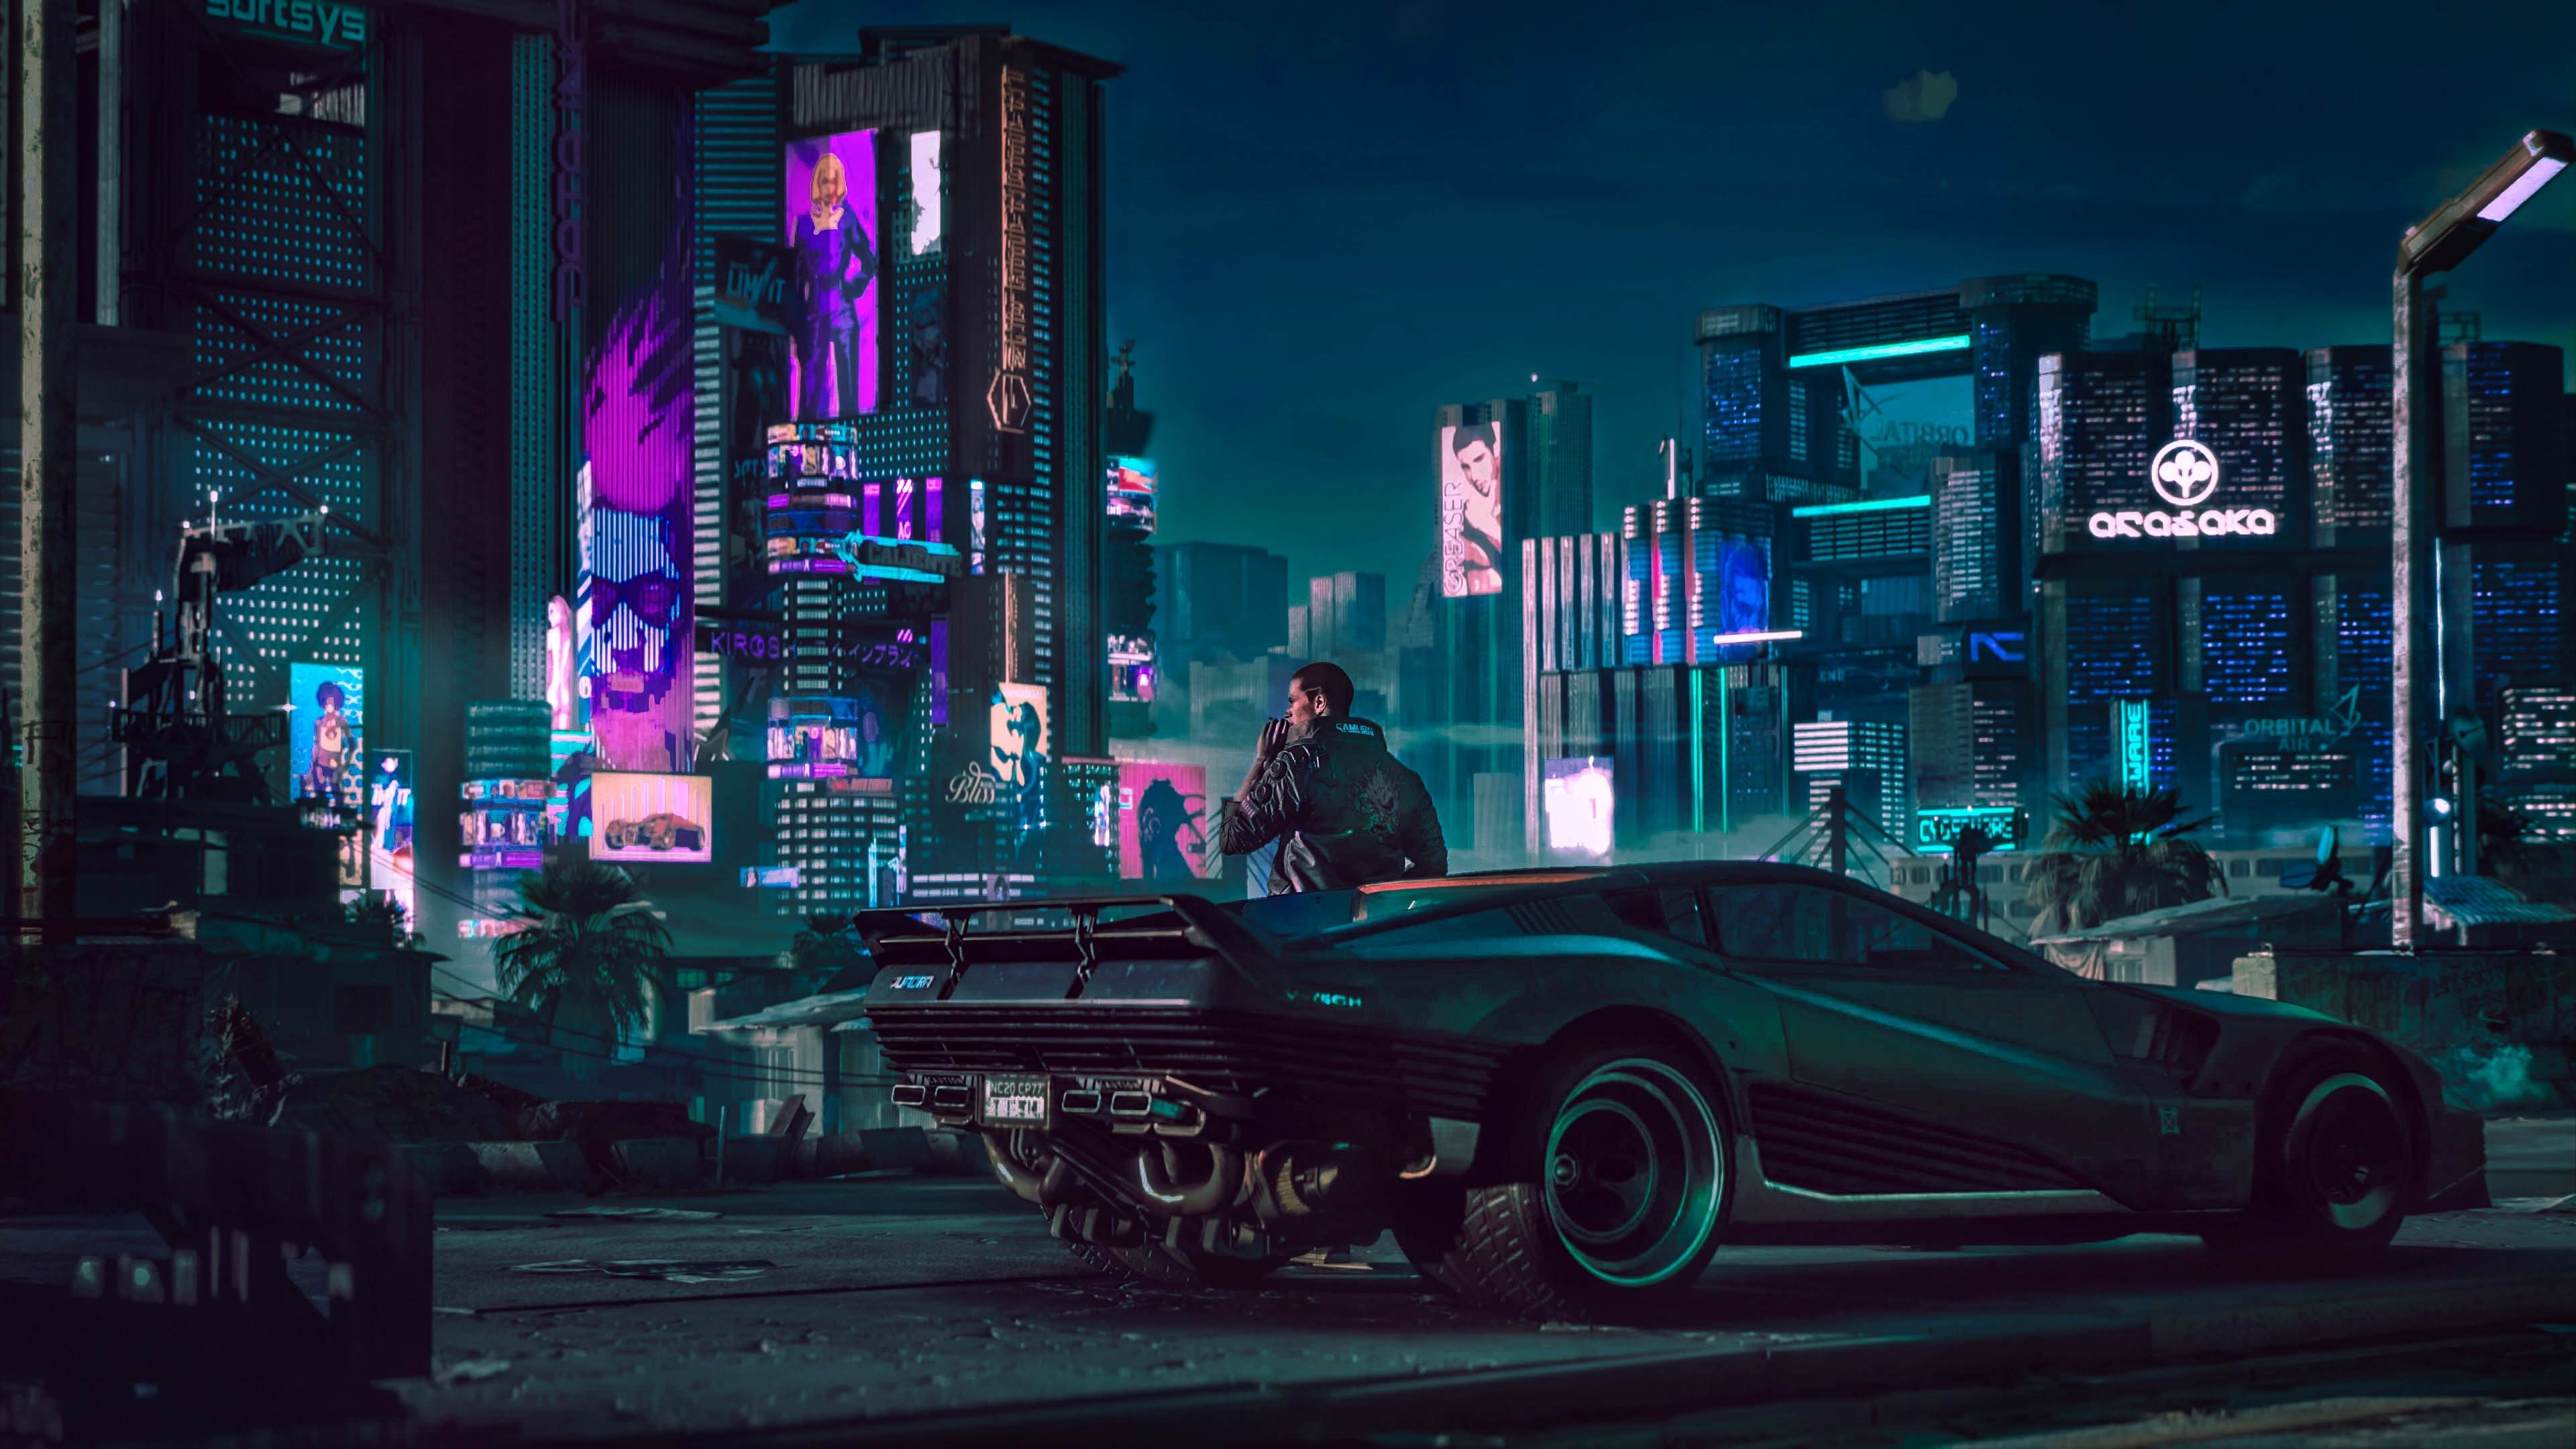 Cyberpunk 2077 Wallpapers   Top Cyberpunk 2077 Backgrounds 3840x2160